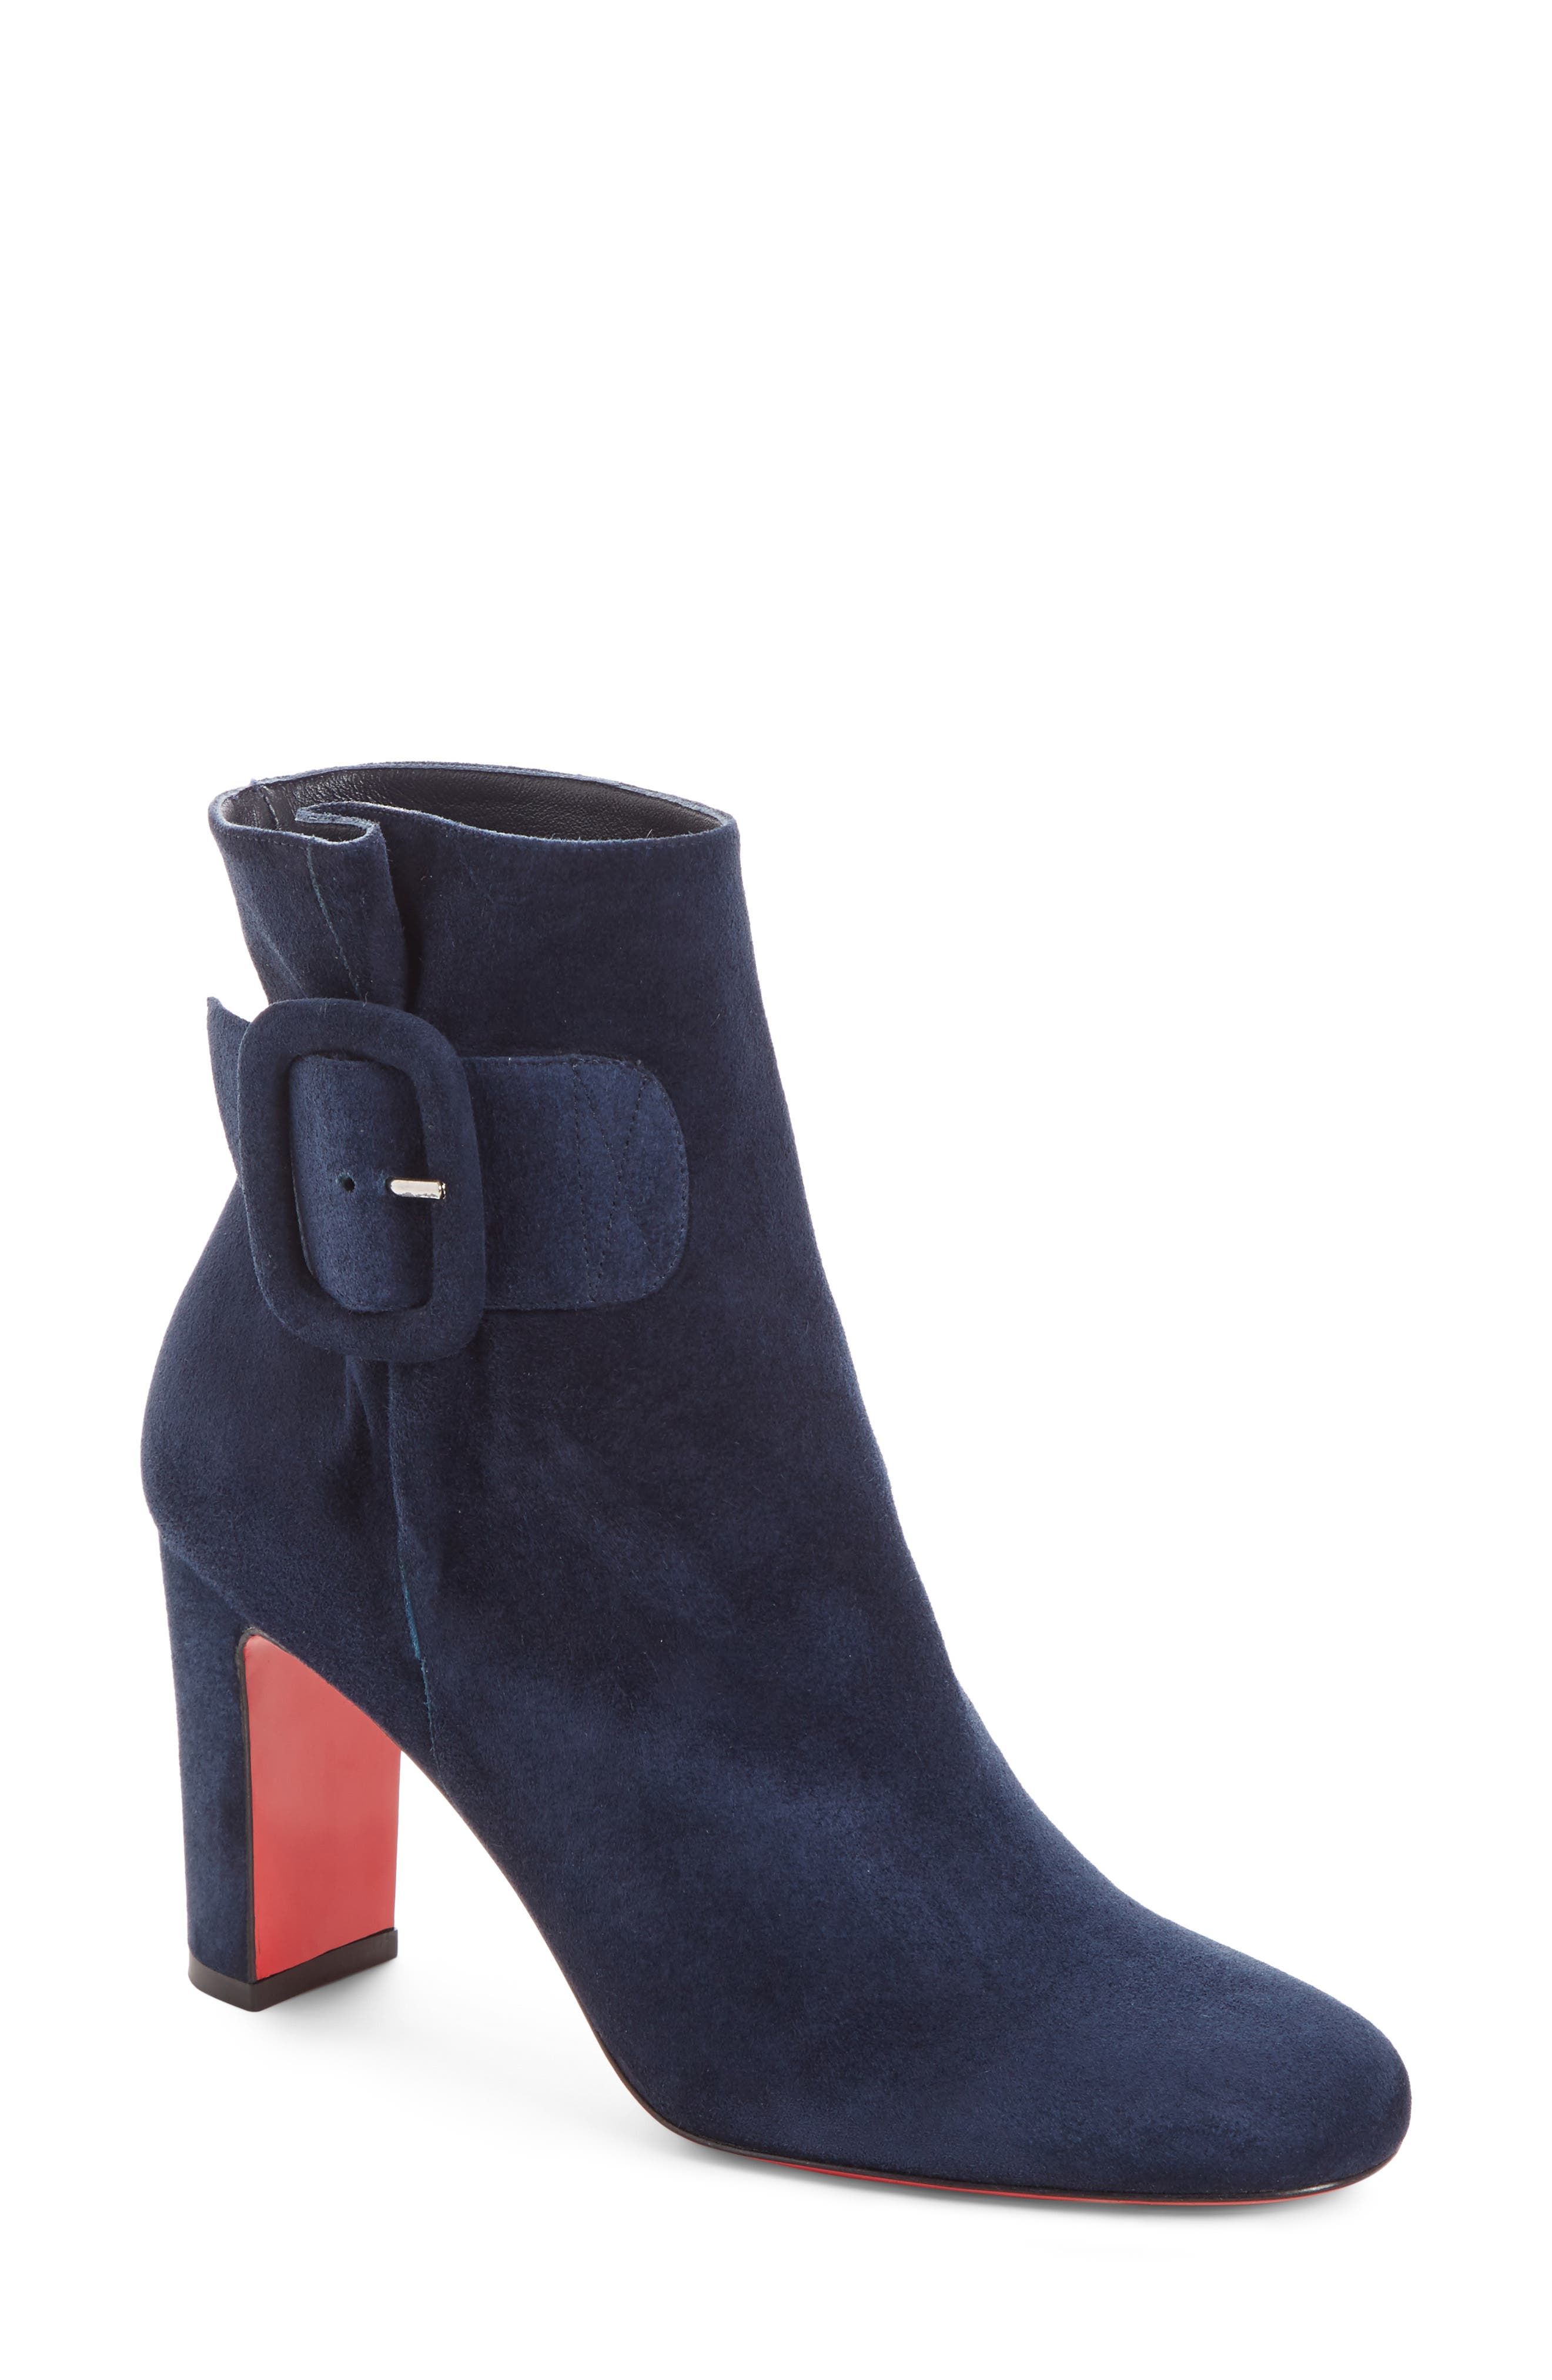 Tres Olivia Buckle Bootie,                             Main thumbnail 1, color,                             MARINE SUEDE